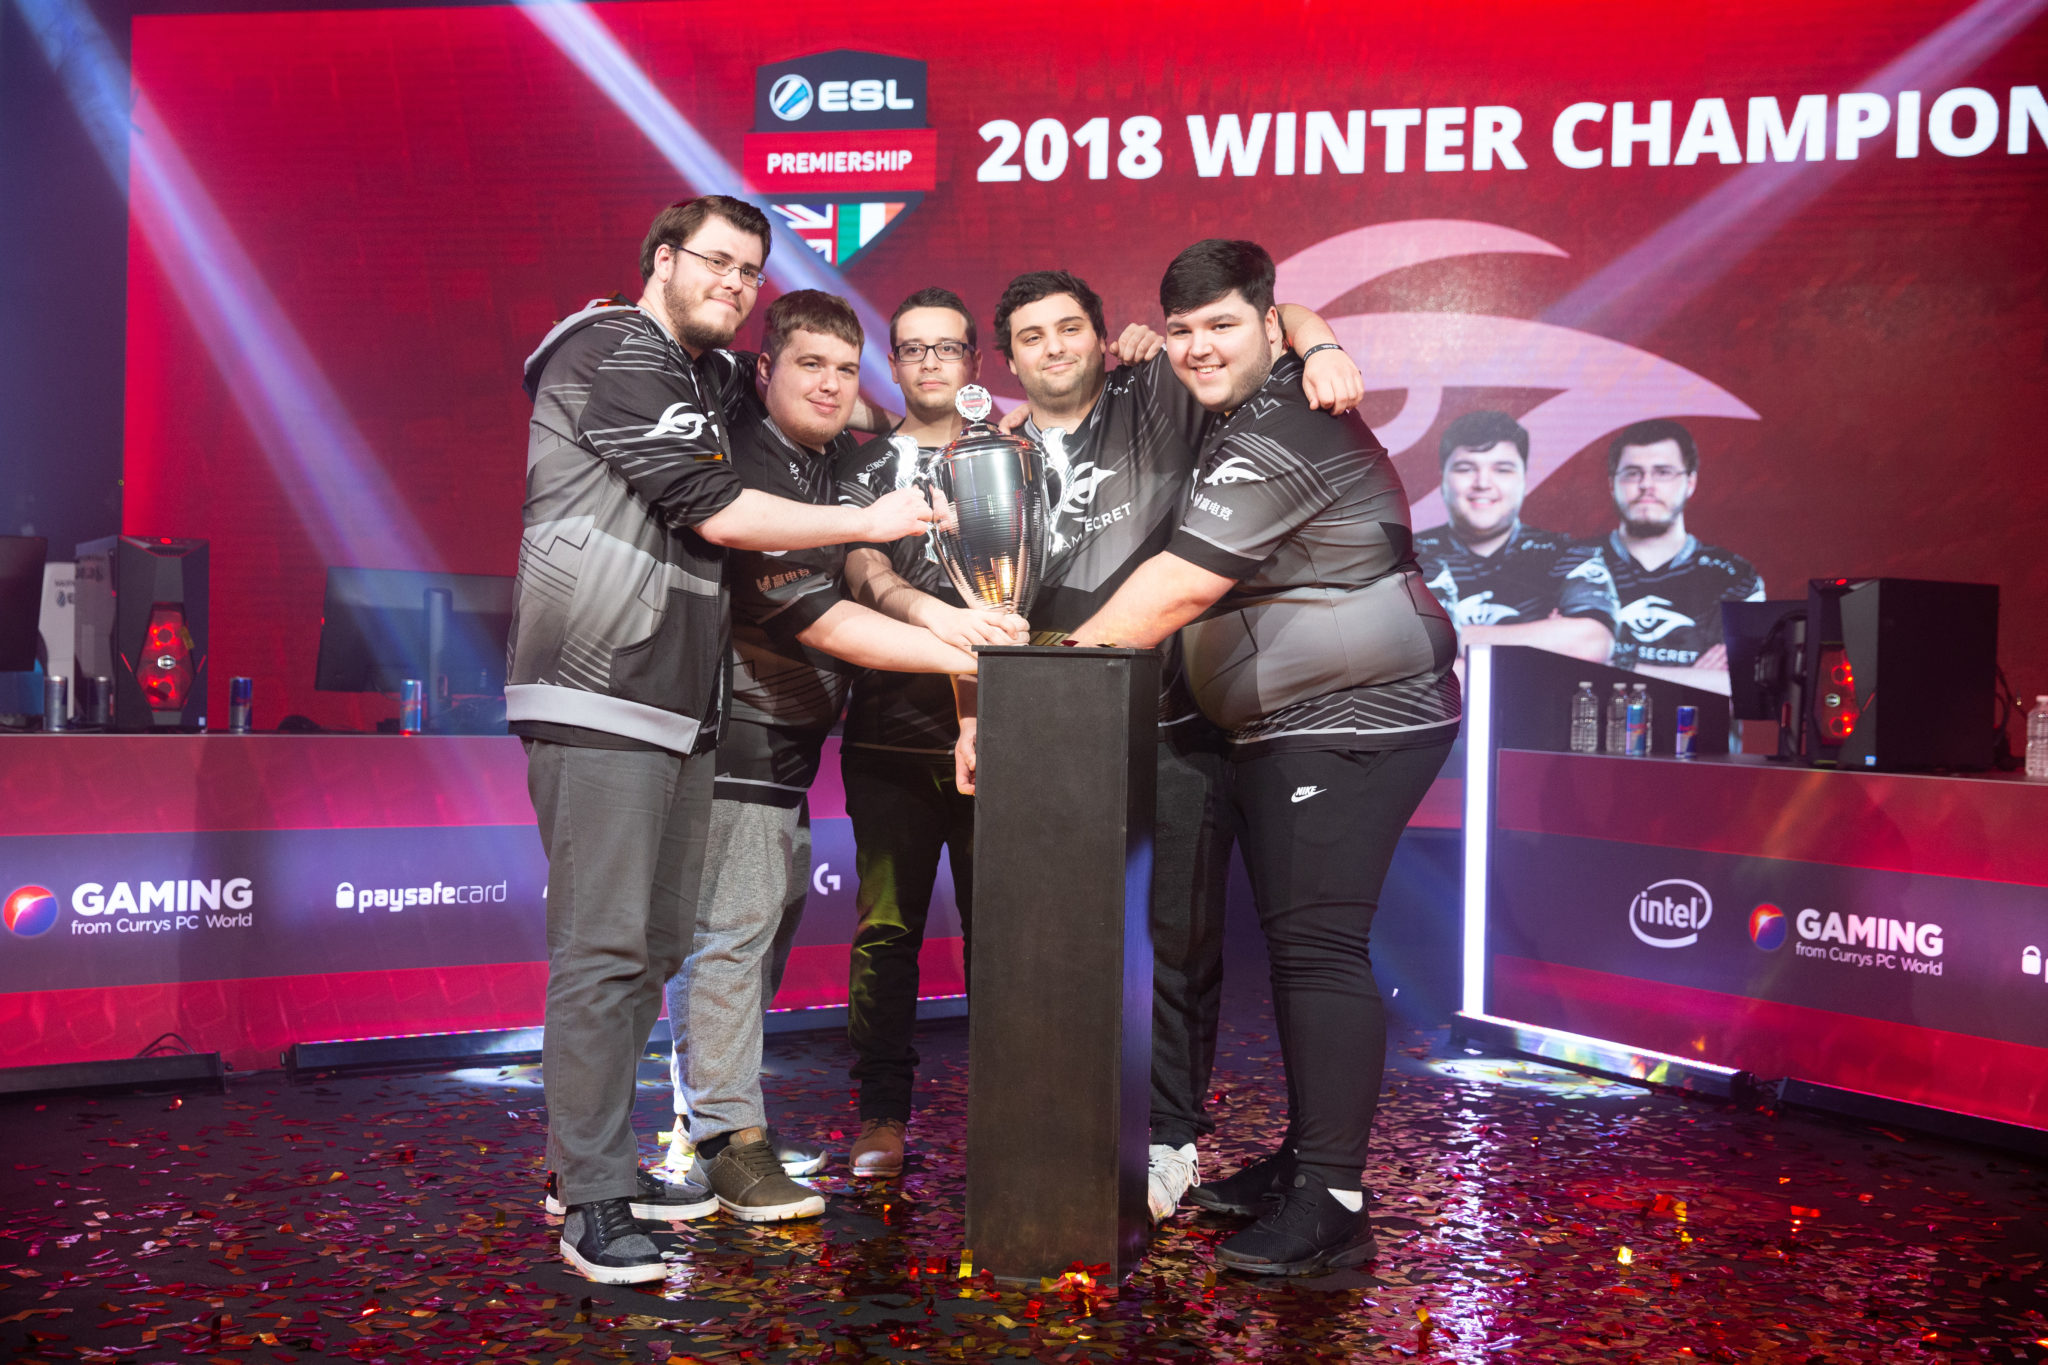 Rainbow Six Siege is back for another season of the ESL Premiership!